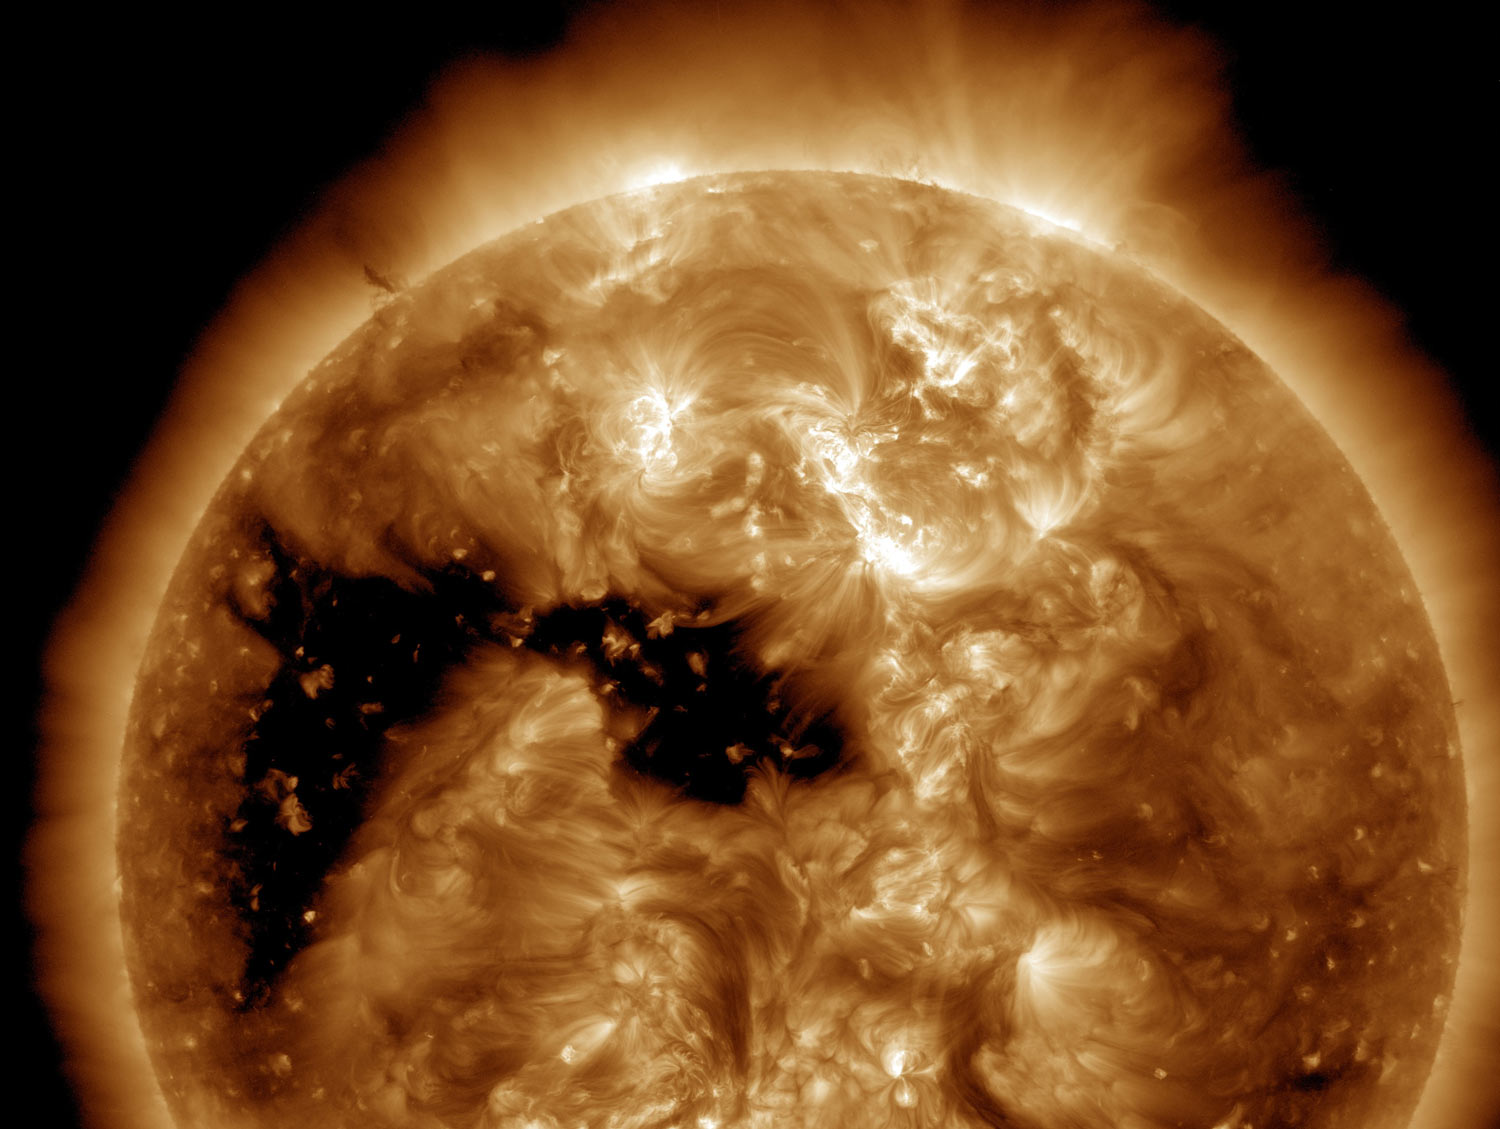 Image Credit - NASA/SDO and the AIA, EVE, and HMI science teams.